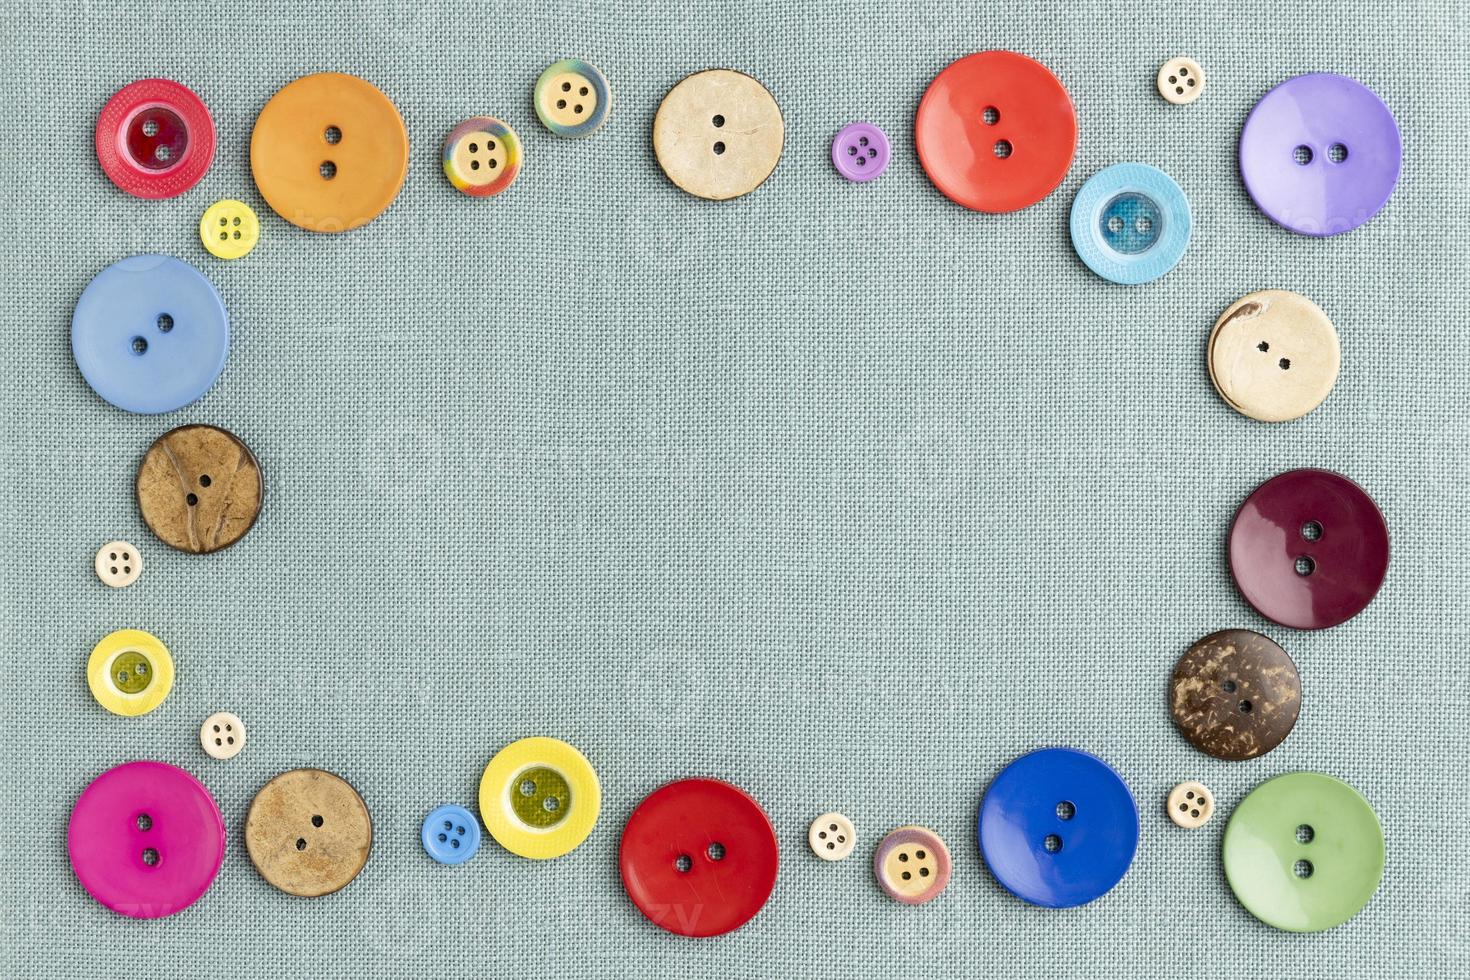 Flat lay colorful buttons on cloth photo